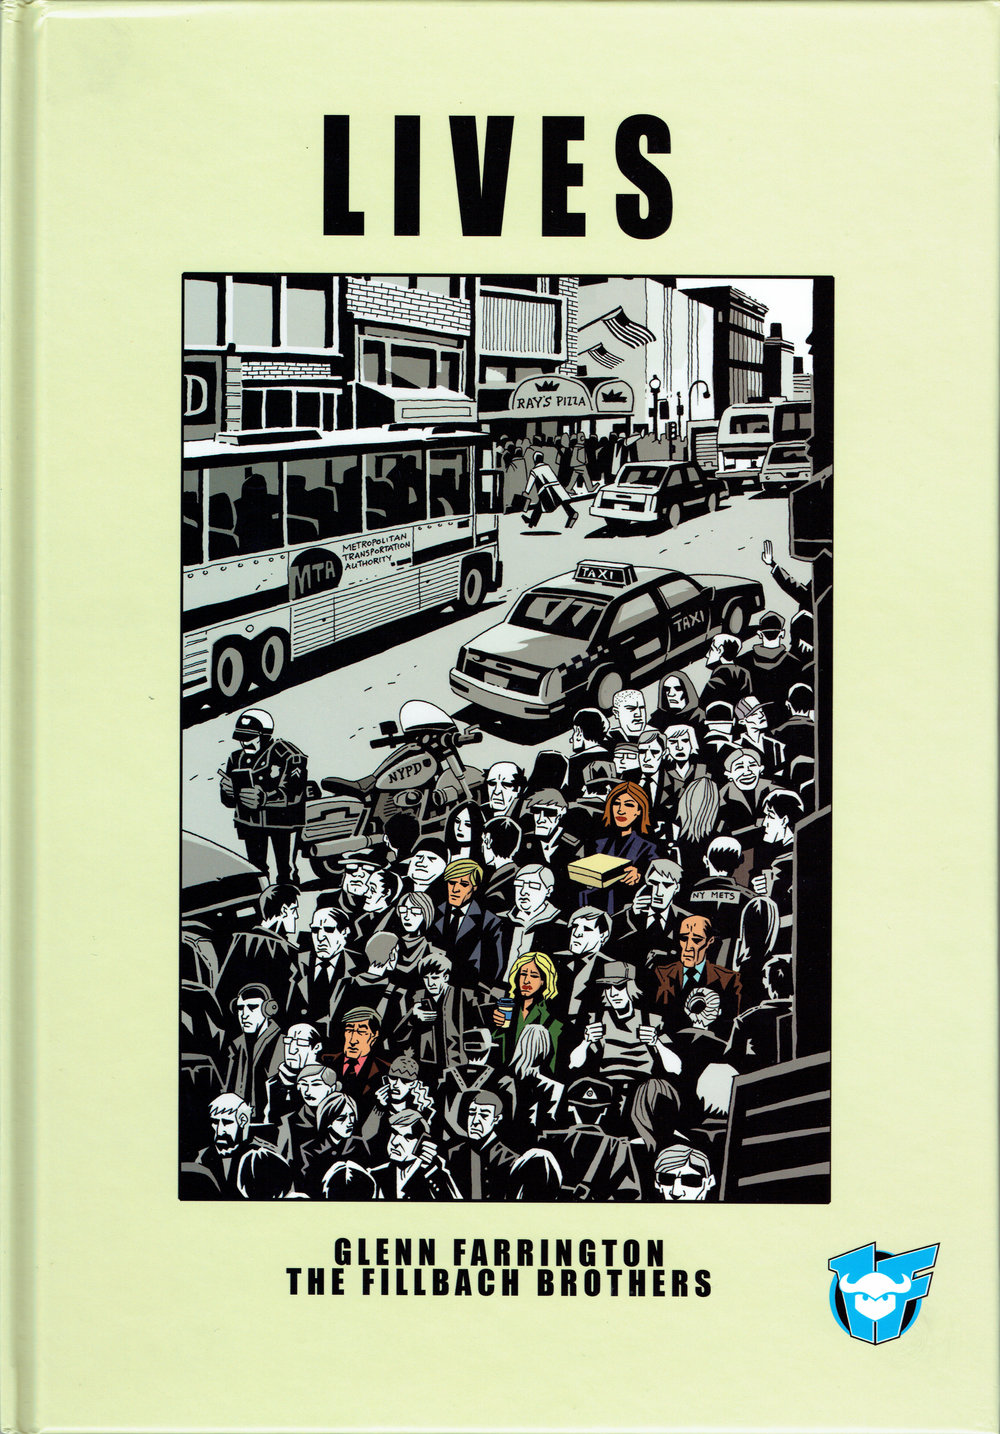 Lives graphic novel from 1First Comics. (front cover)